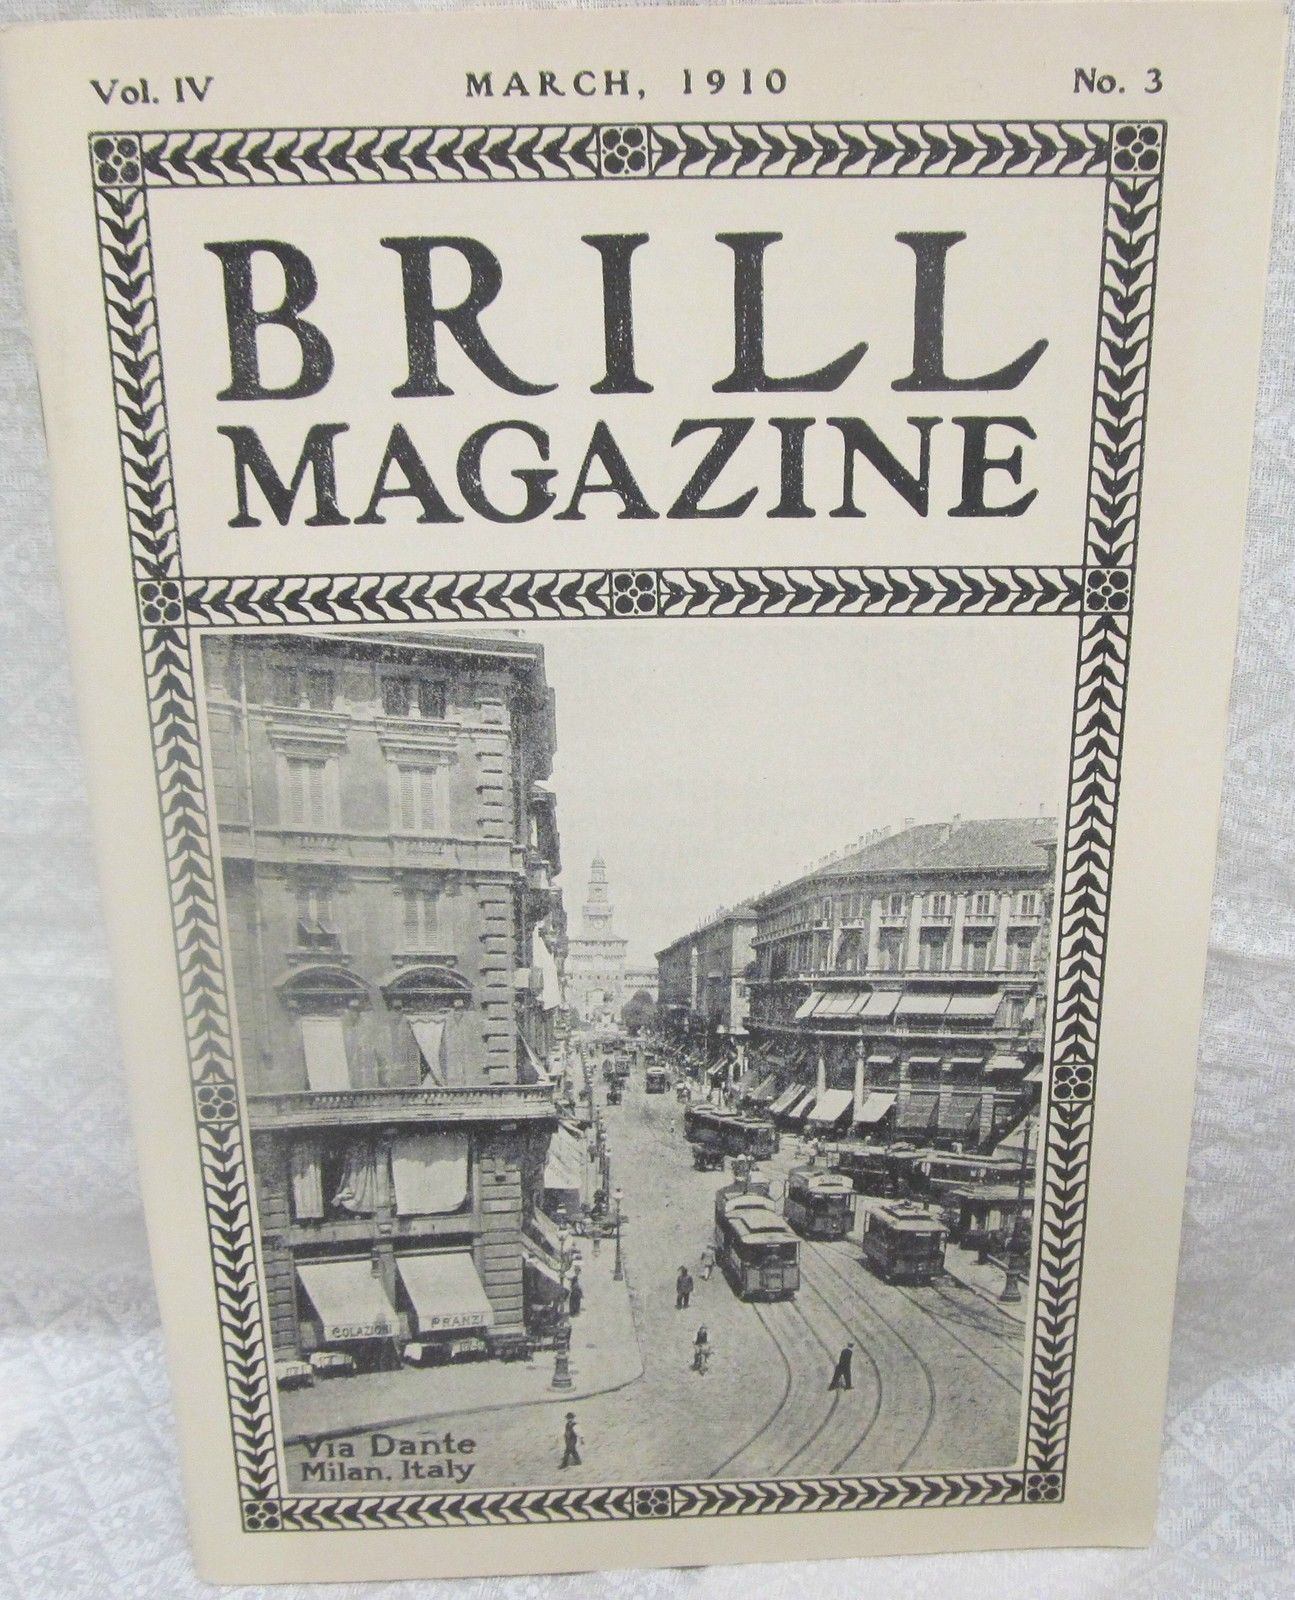 Primary image for Brill Magazine, March 1910